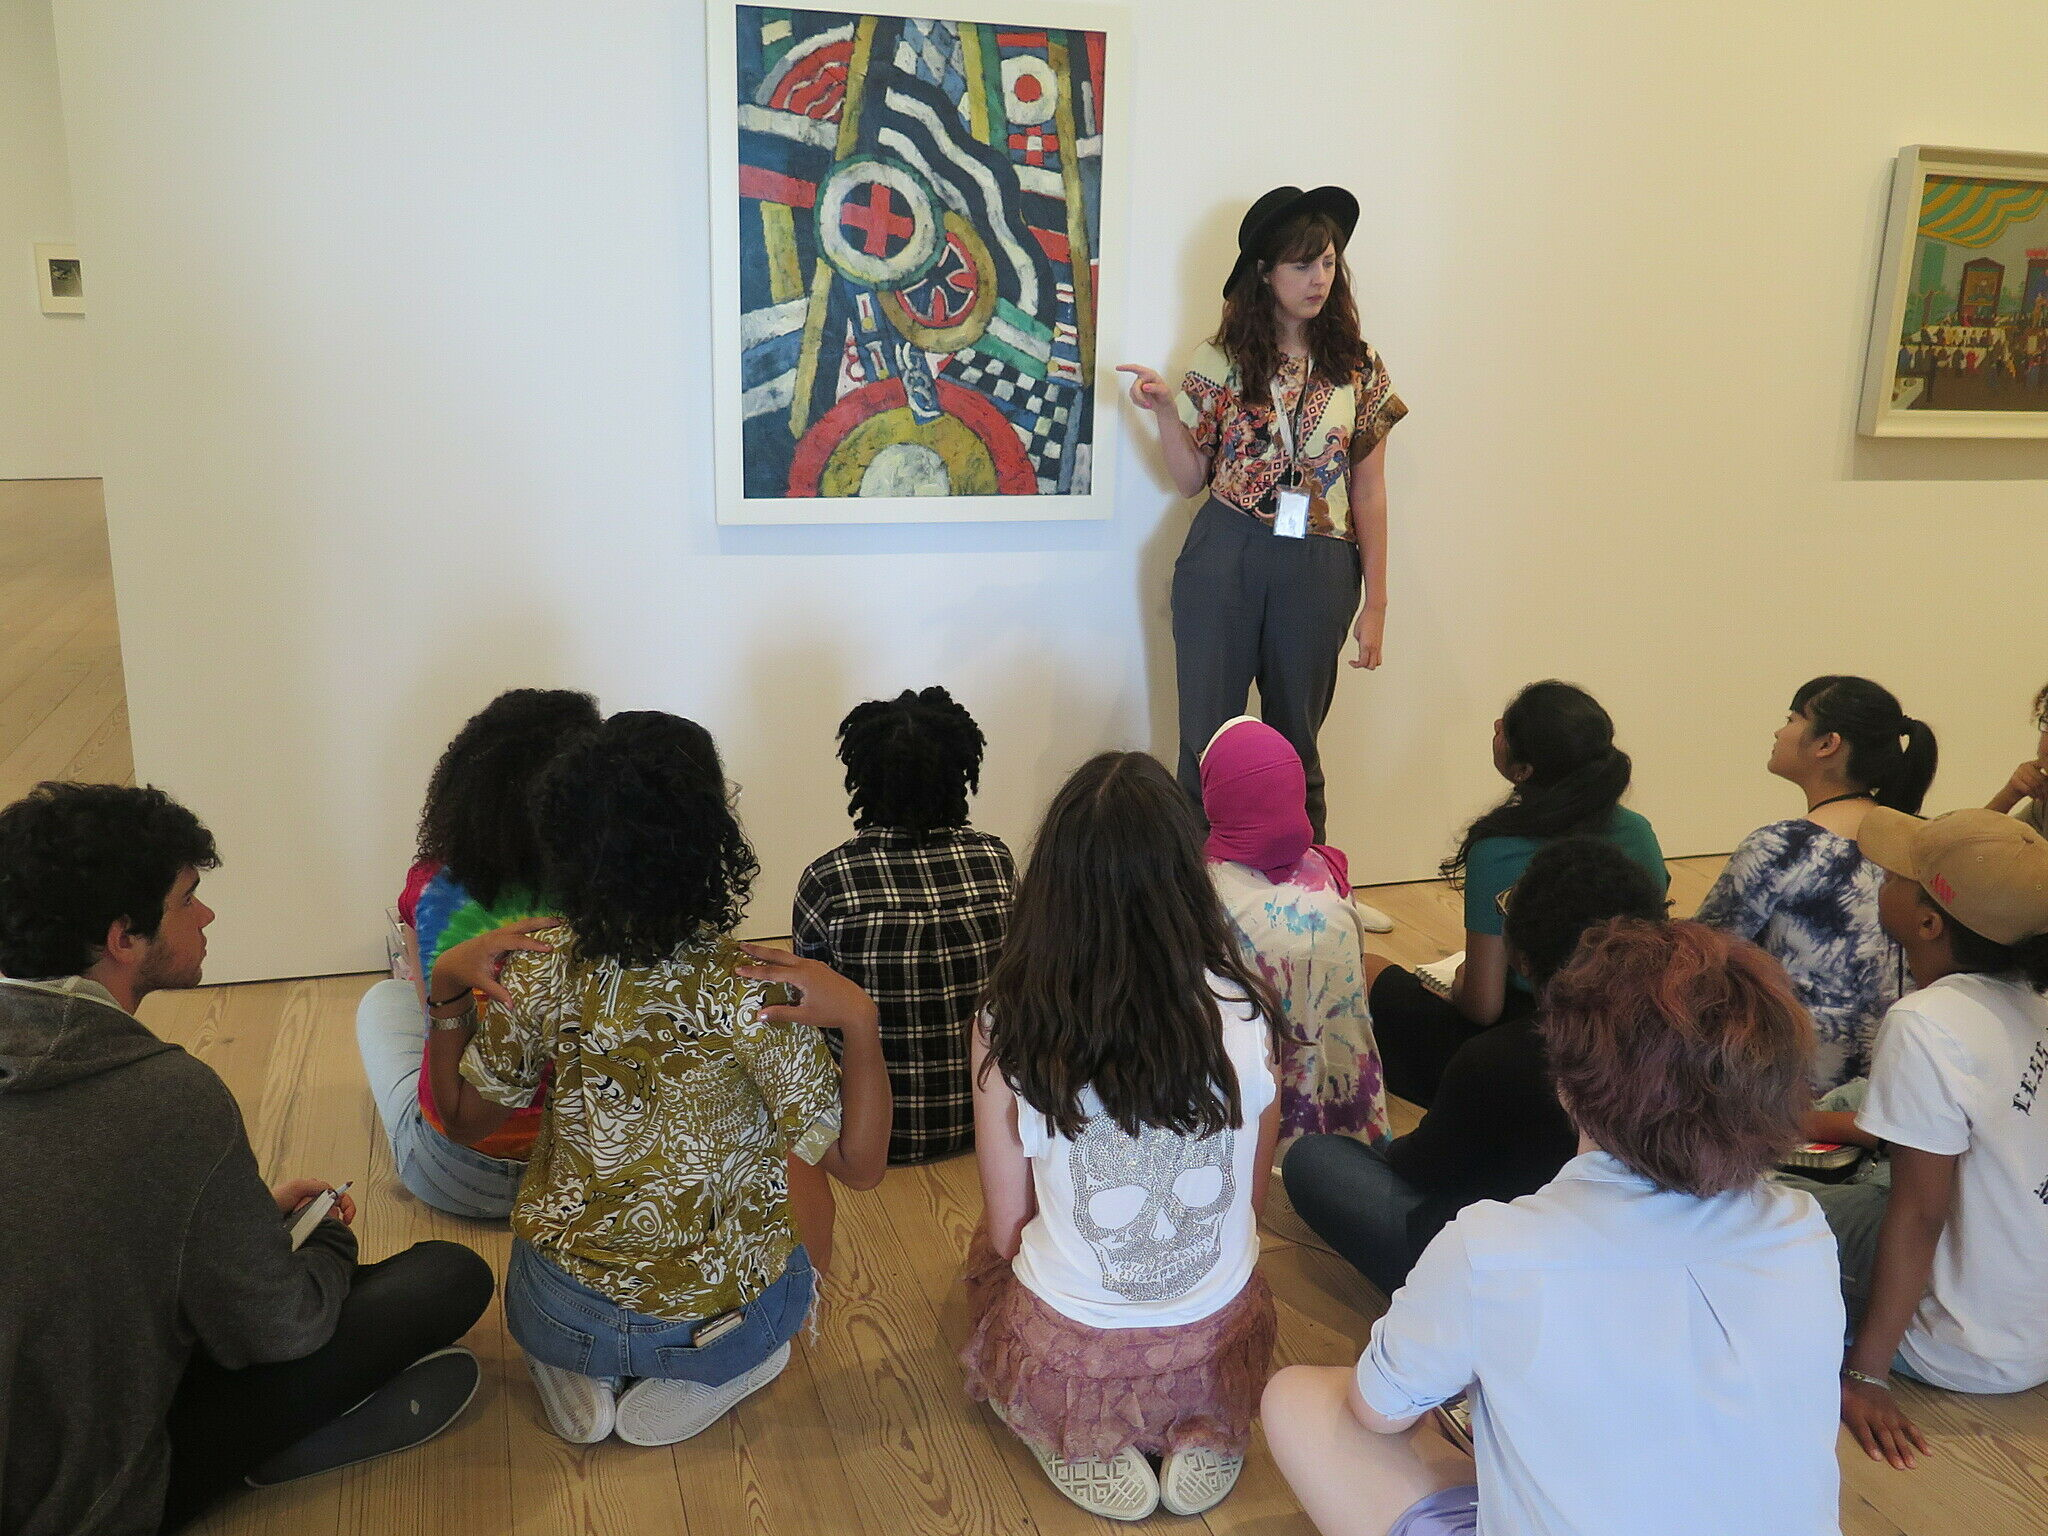 Billie Rae Vinson standing next to an artwork giving a talk